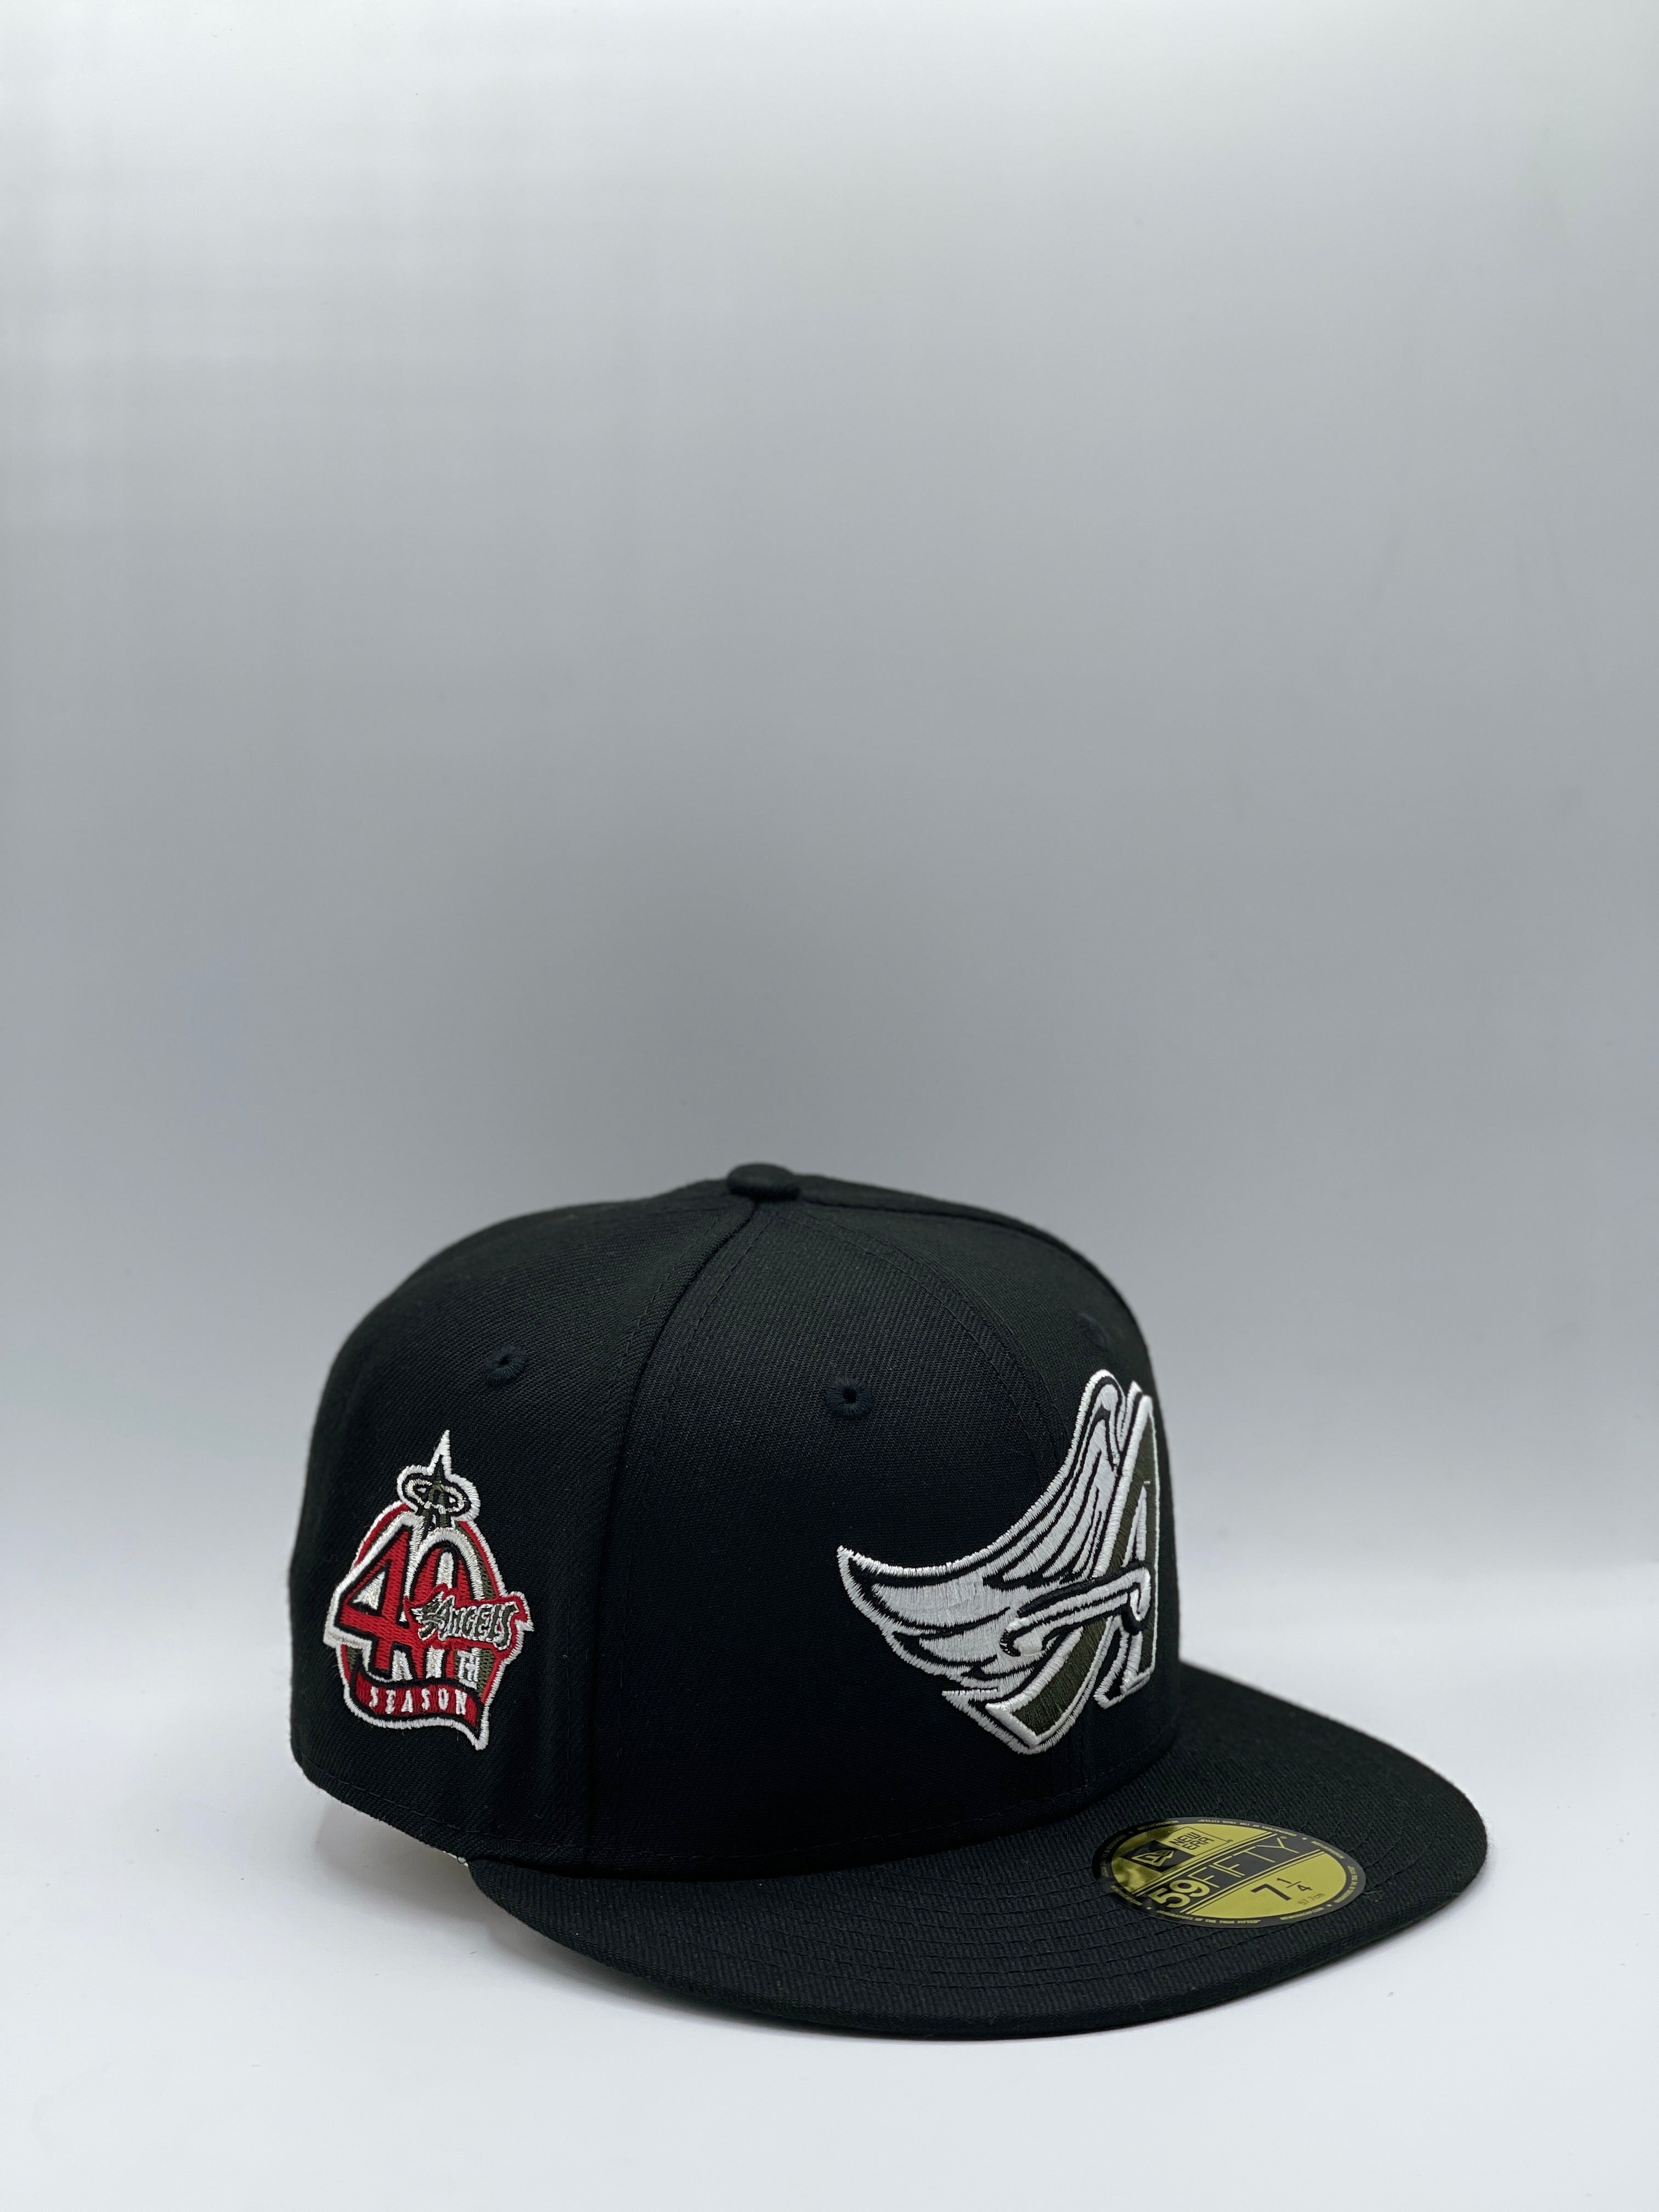 ANAHEIM ANGELS x 40TH ANNIVERSARY NEW ERA 59FIFTY (OLIVE UV)